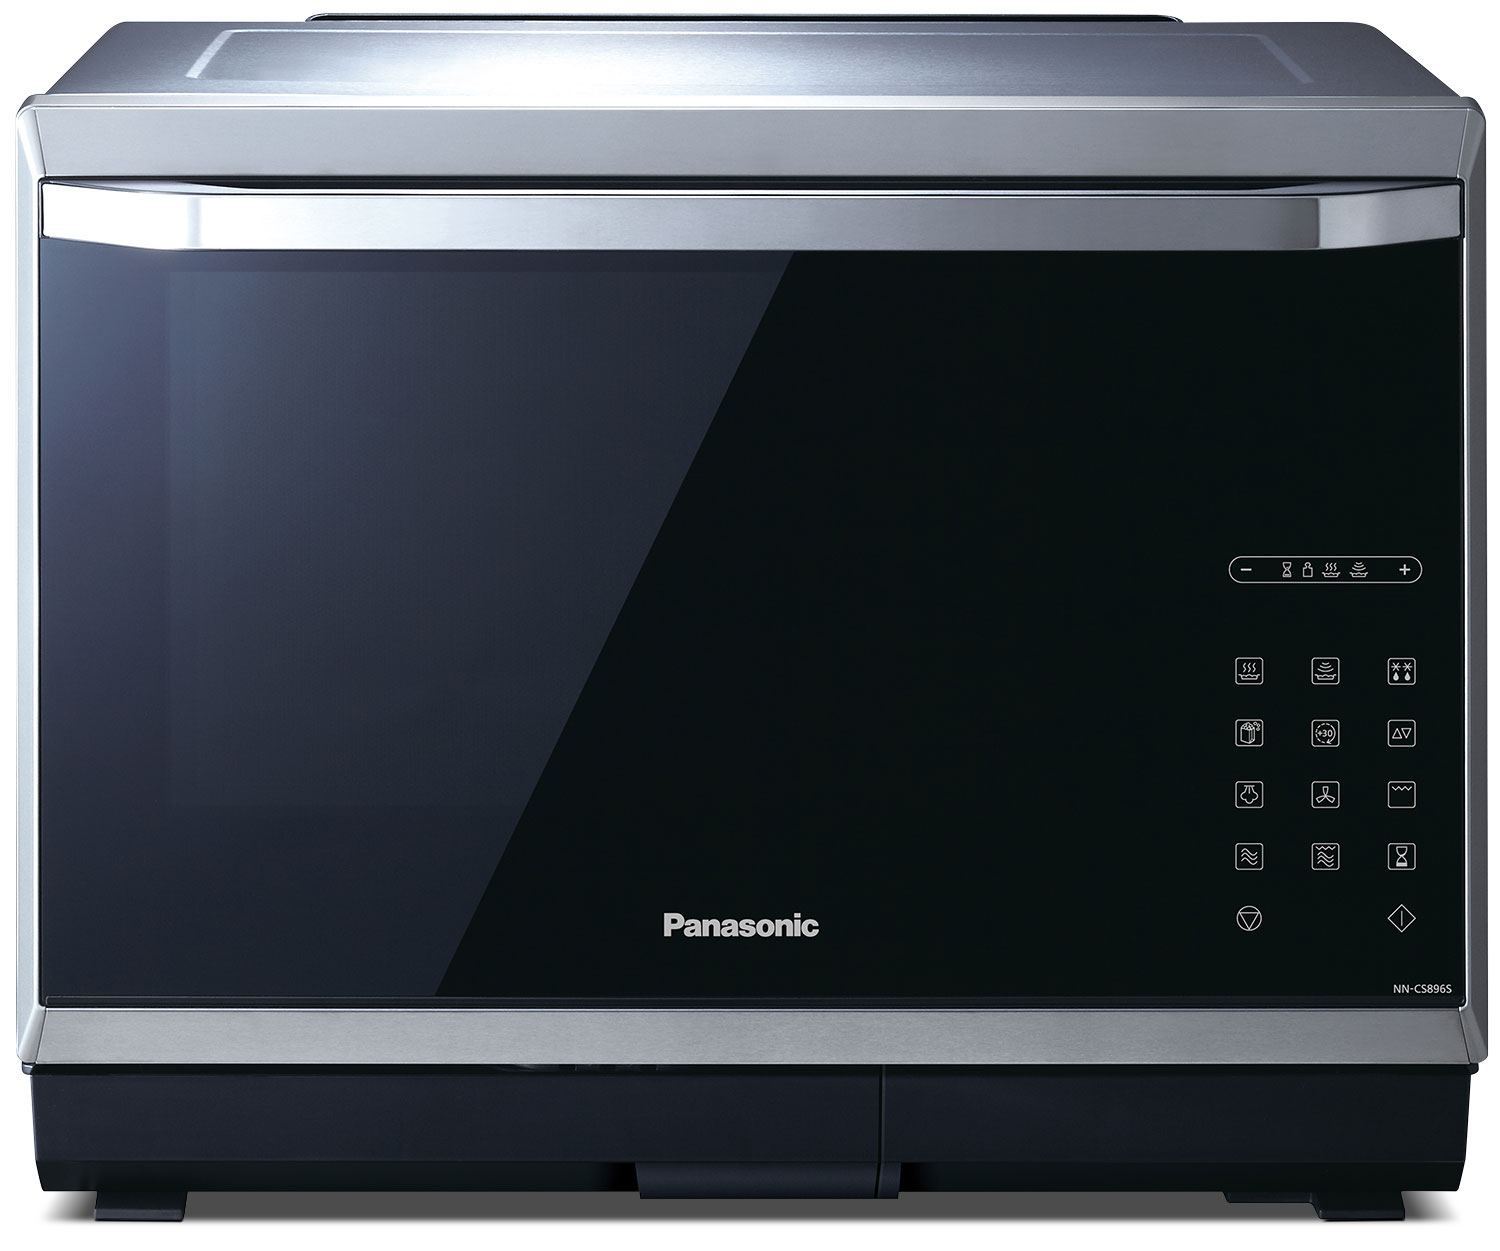 Panasonic 1.2 Cu. Ft. Steam Convection Countertop Microwave – NNCS896S